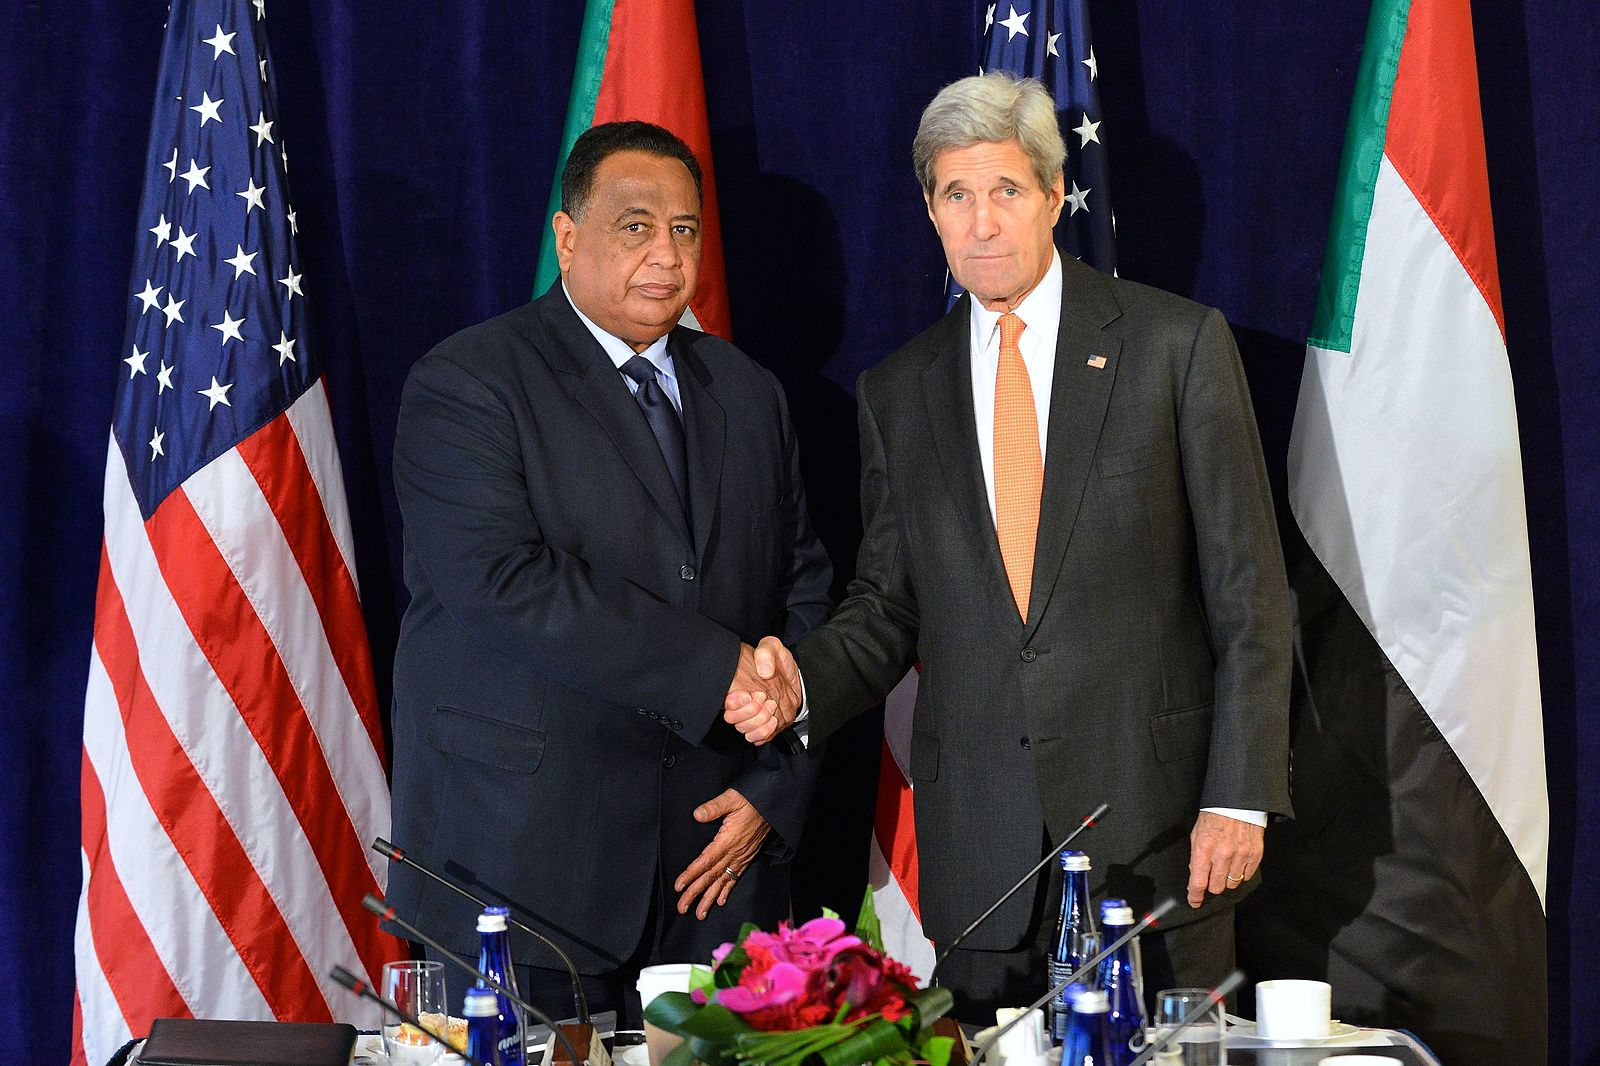 Secretary_Kerry_Poses_for_a_Photo_With_Sudanese_Foreign_Minister_Ghandour_Before_Their_Meeting_in_New_York_City_(21267806193).jpg